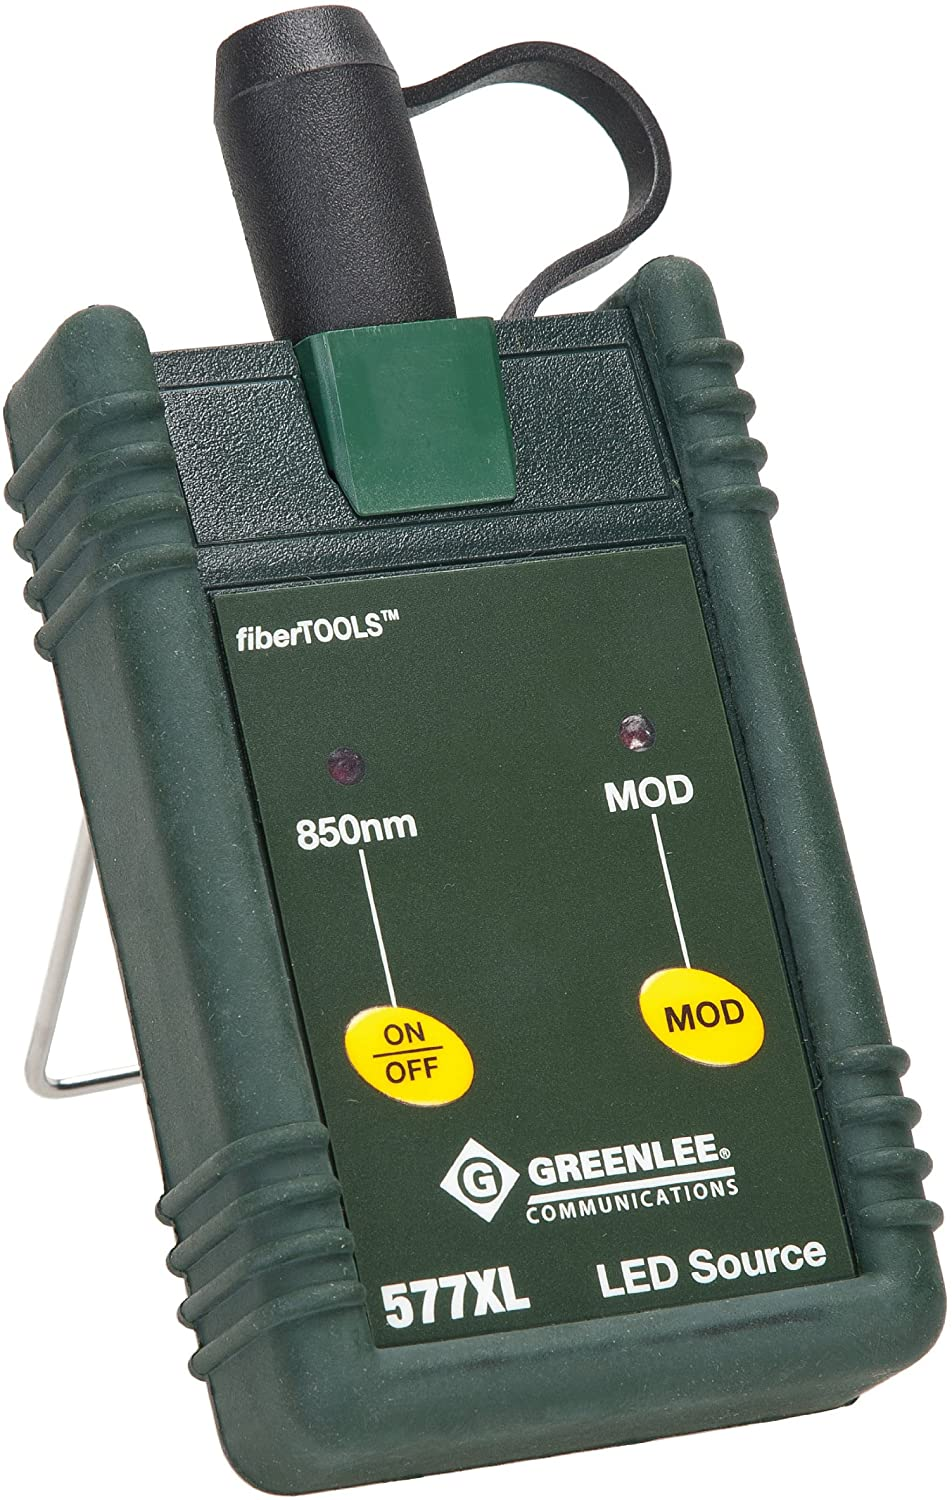 Greenlee 577XL AS100 FIBER OPTIC LED SOURCE